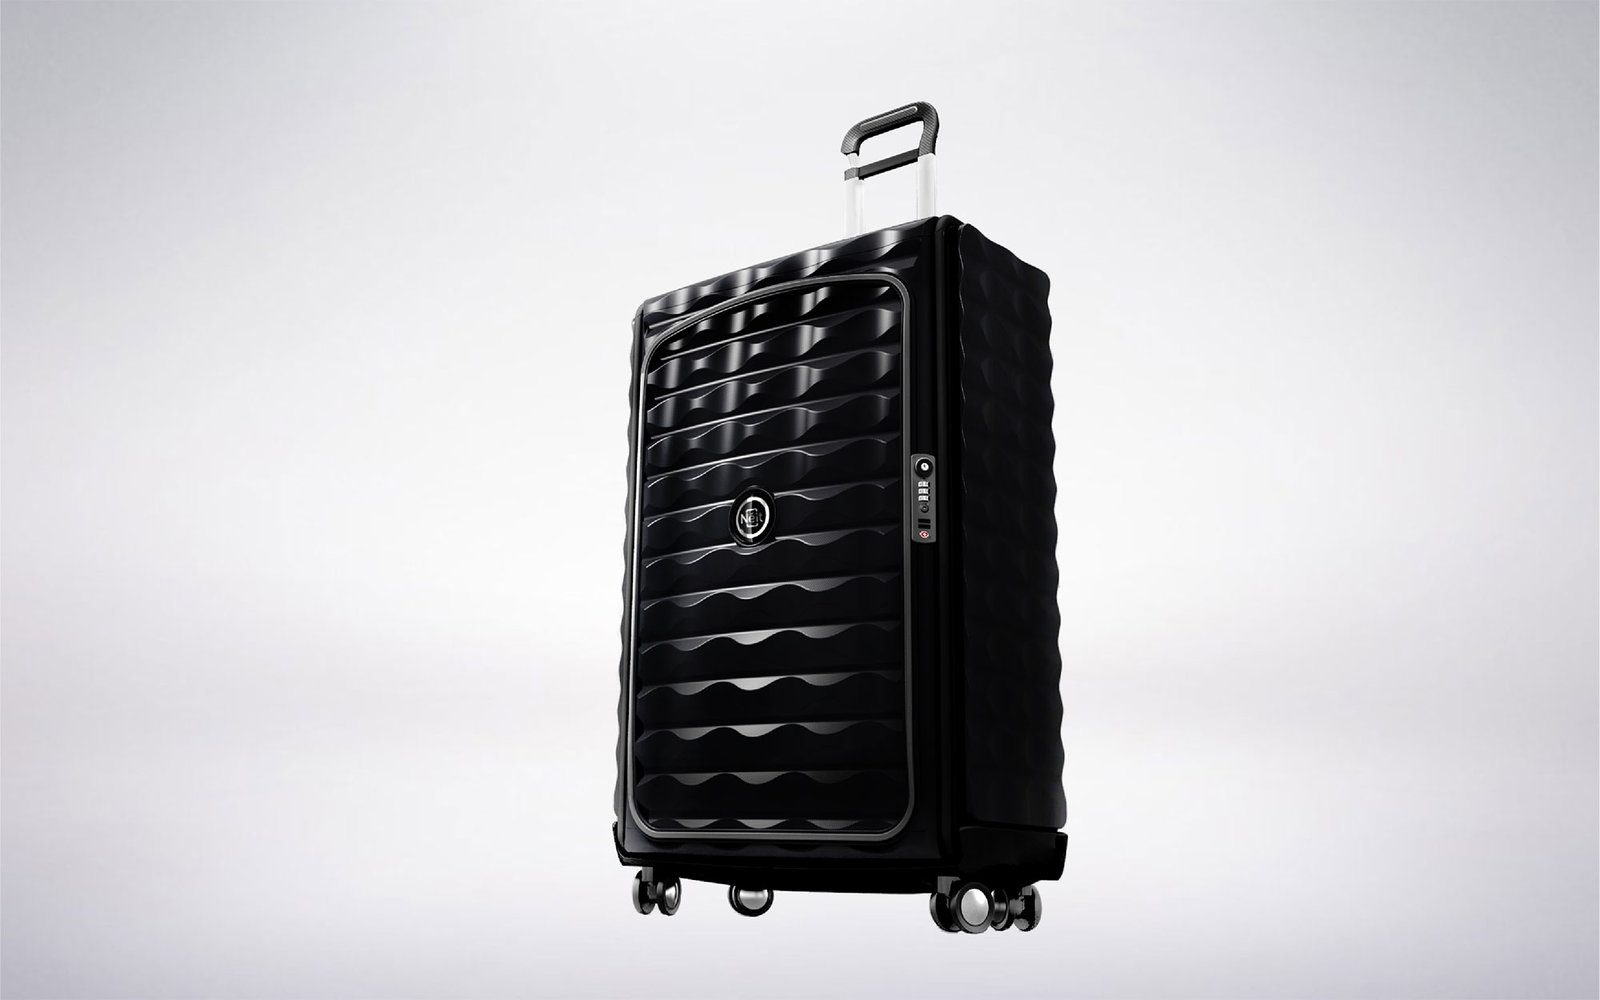 New Suitcase Design Will Change The Way You Store Luggage